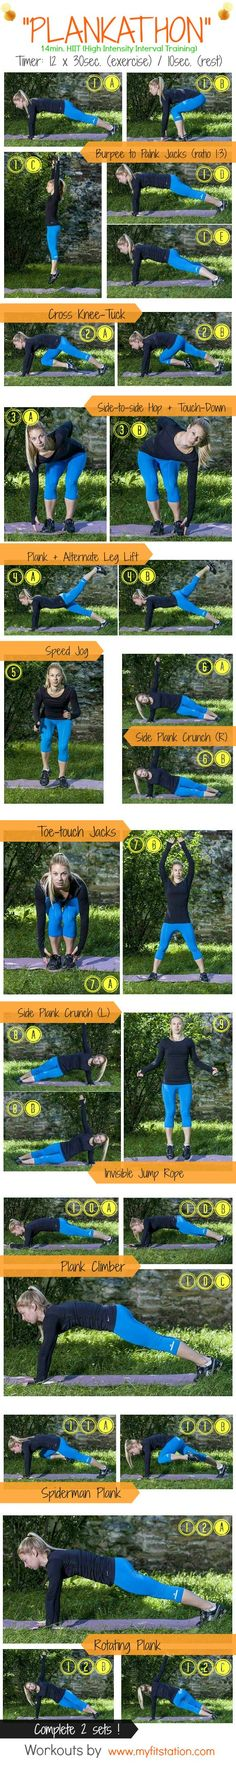 Plankathon HIIT: Workout Infographic. This looks like a great workout. Especially since you cannot do crunches pregnant.